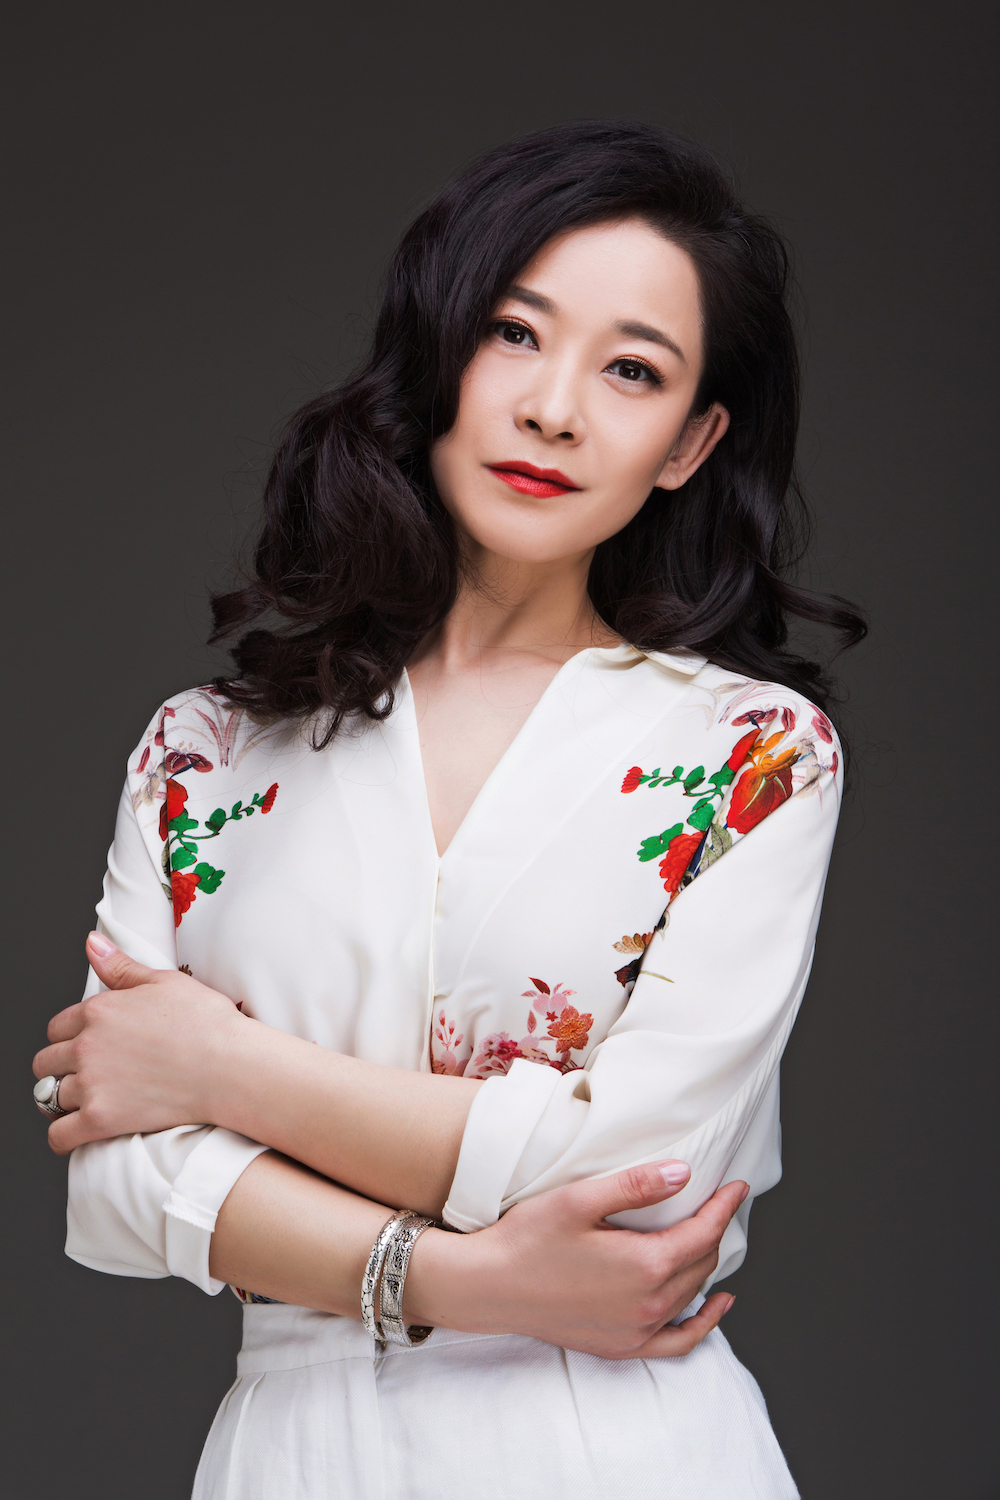 Teacher yue ling -- take pride in the drama actors and add splendor to the screen and screen.